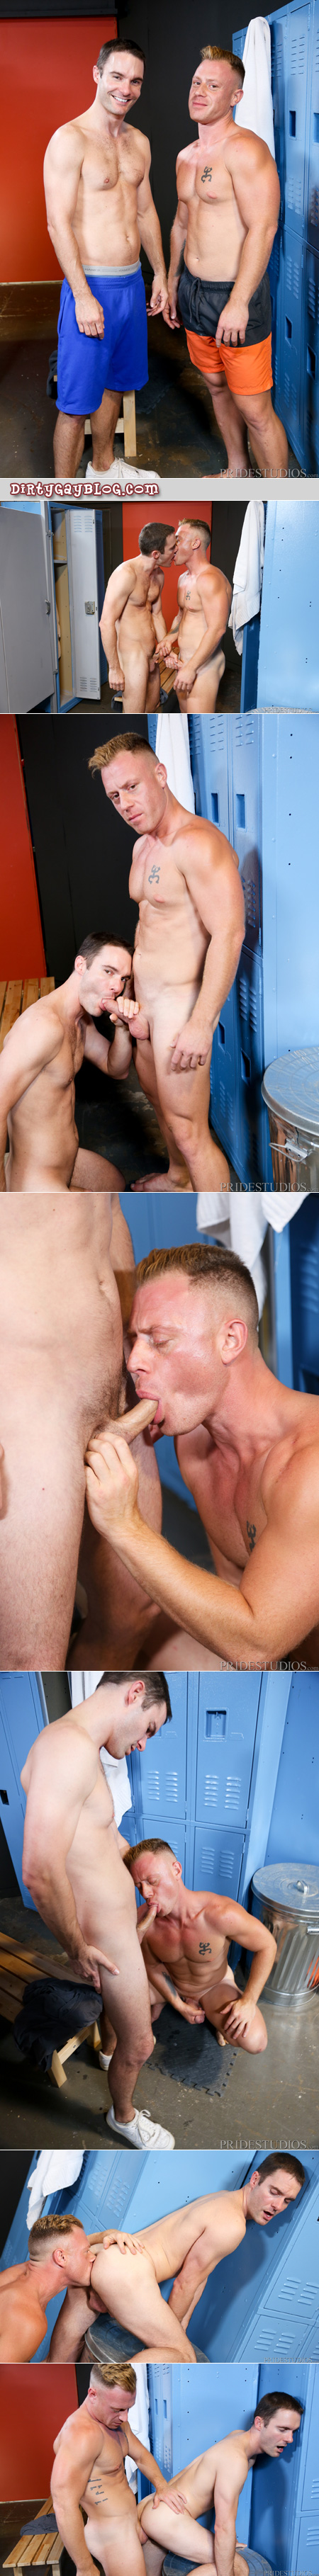 Muscle ginger fucking another man in the locker room.